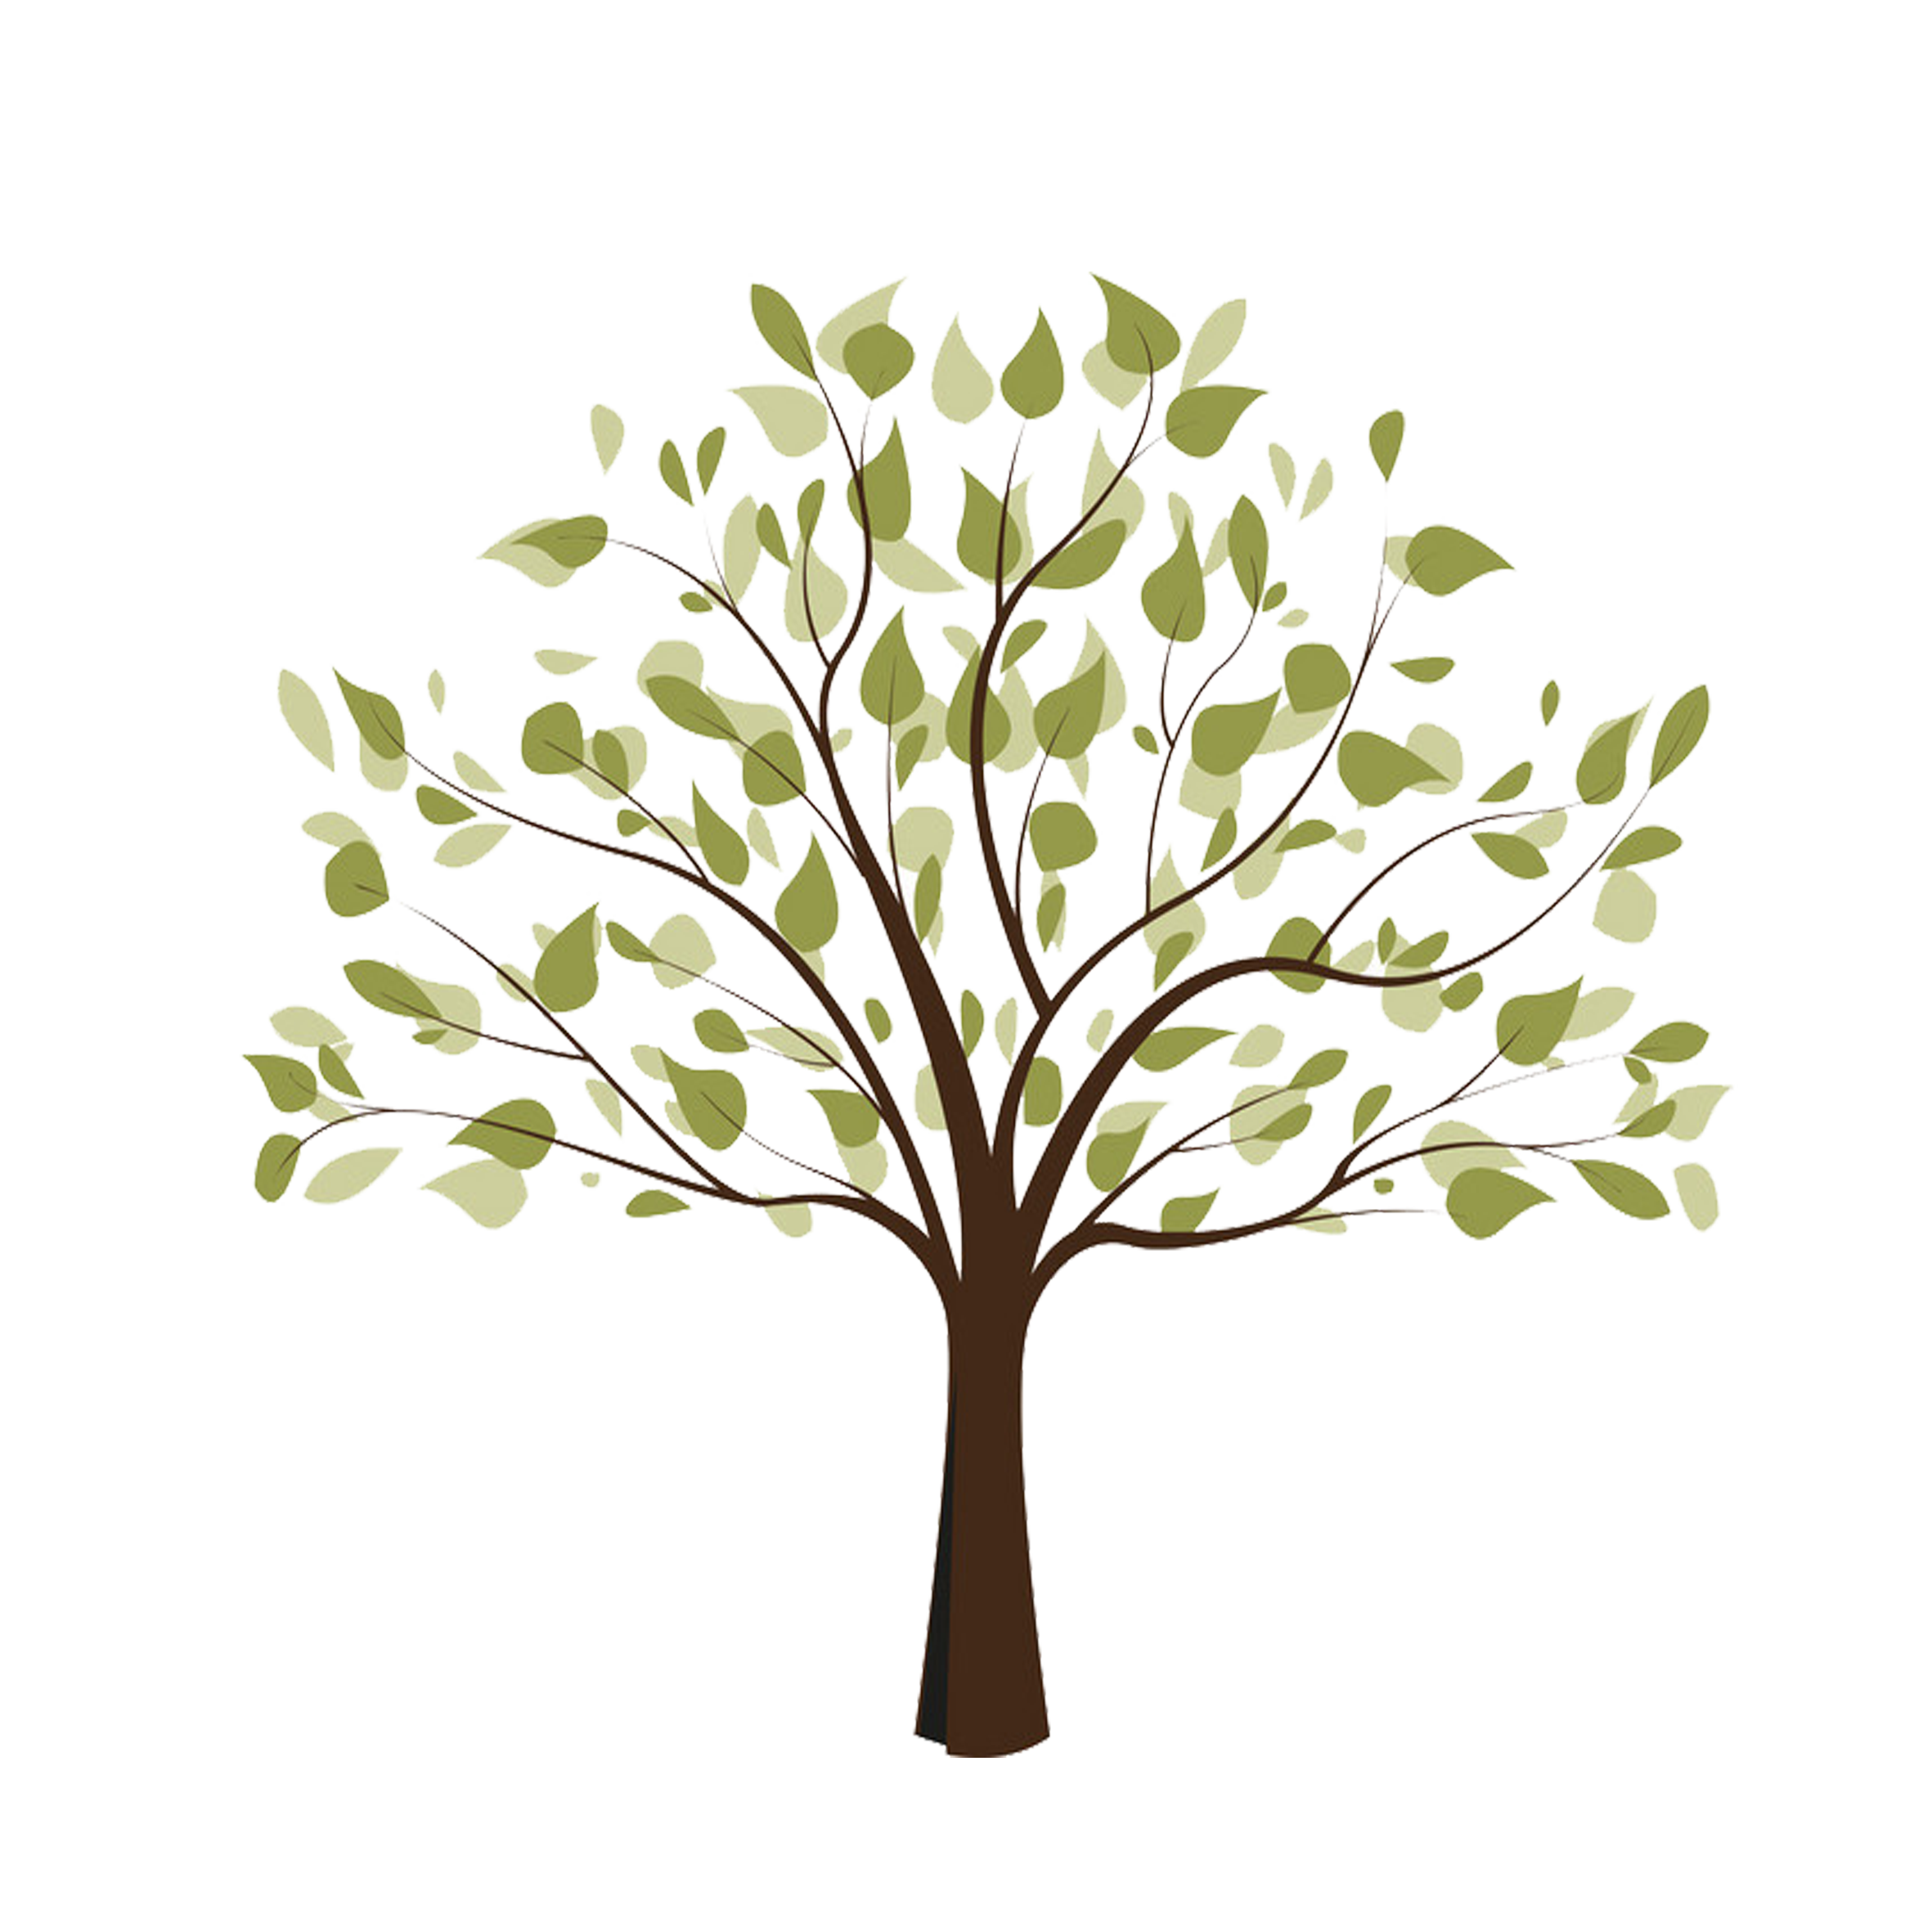 Tree of life free clipart transparent library Tree of life Free content Clip art - Cartoon trees 2362*2362 ... transparent library